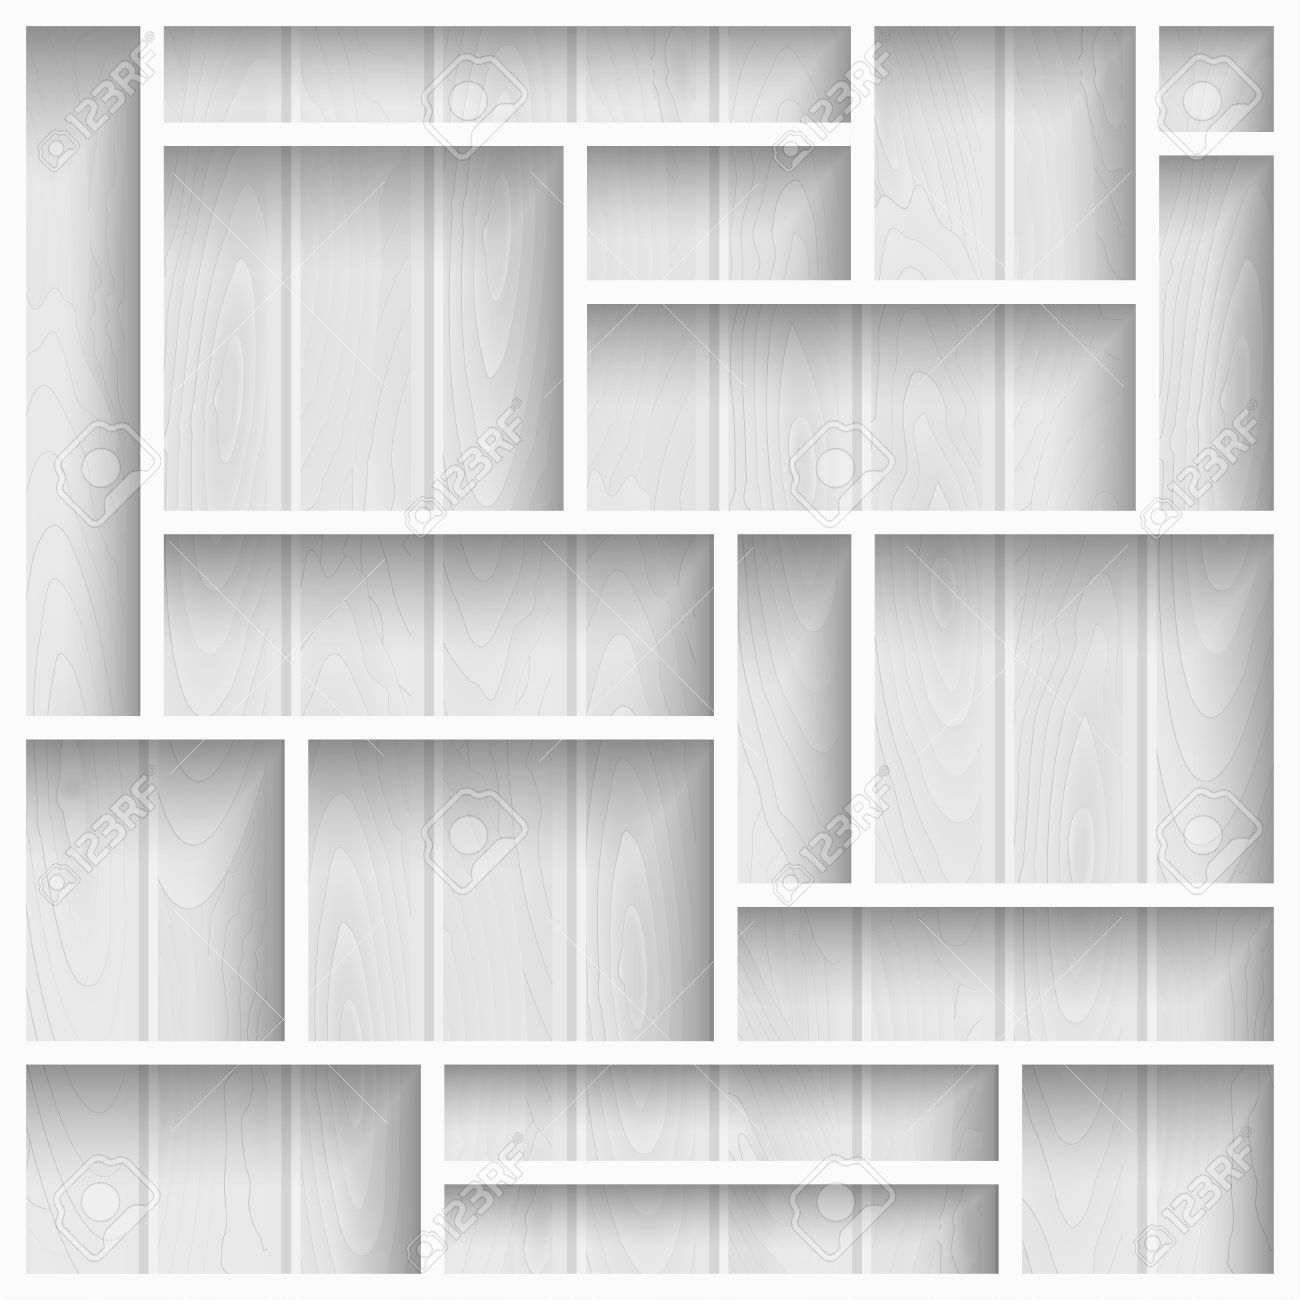 Empty White Shelves On The Wooden Wall In Gray Colors, Vector